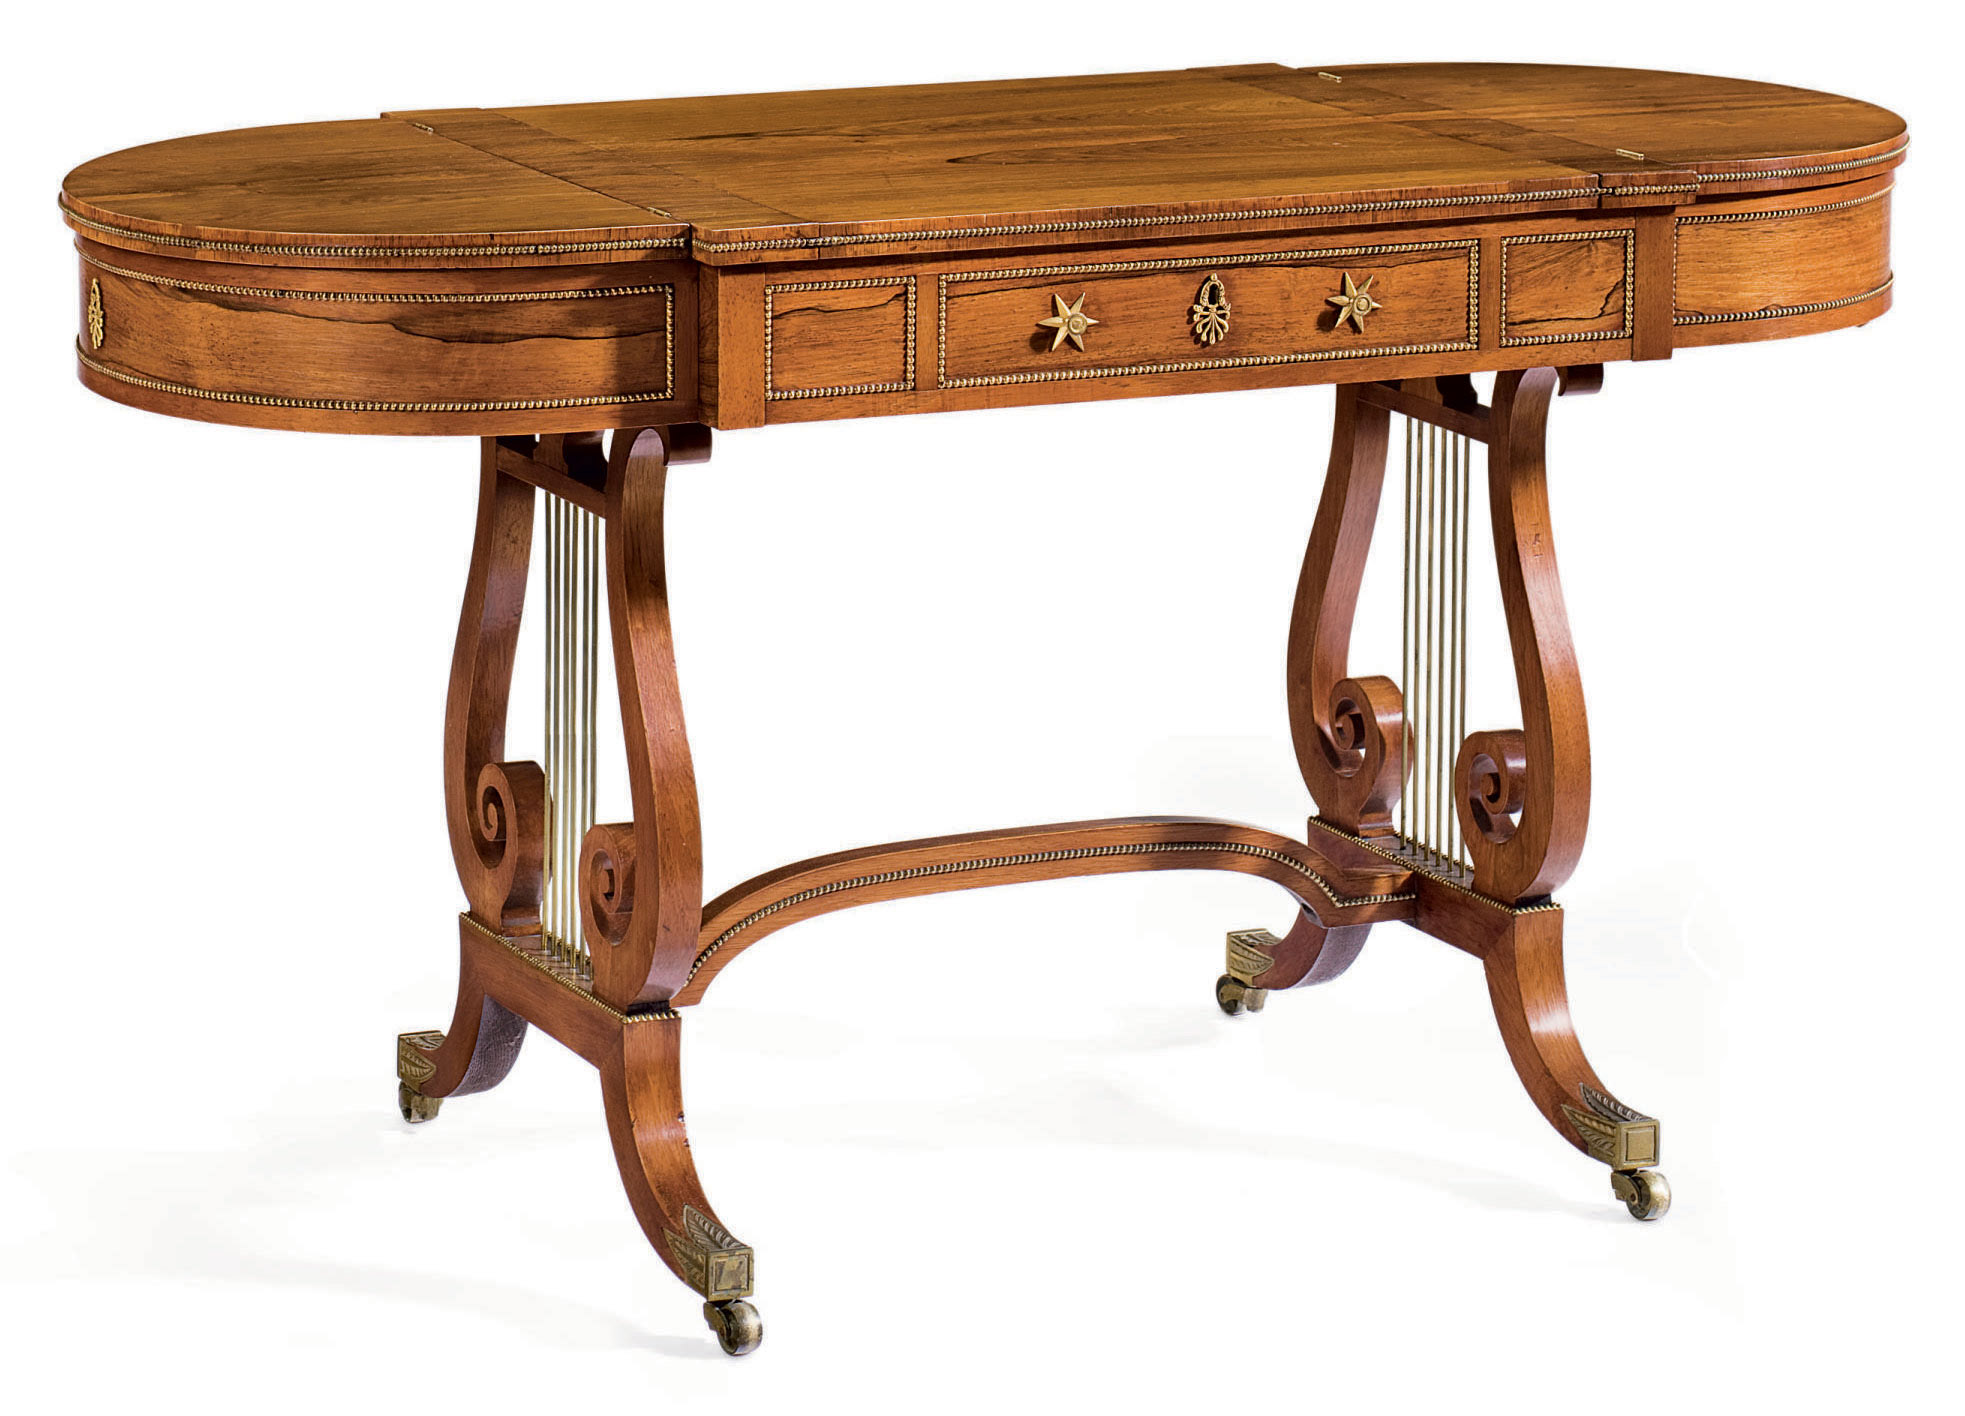 A REGENCY BRASS-MOUNTED ROSEWOOD GAMES TABLE